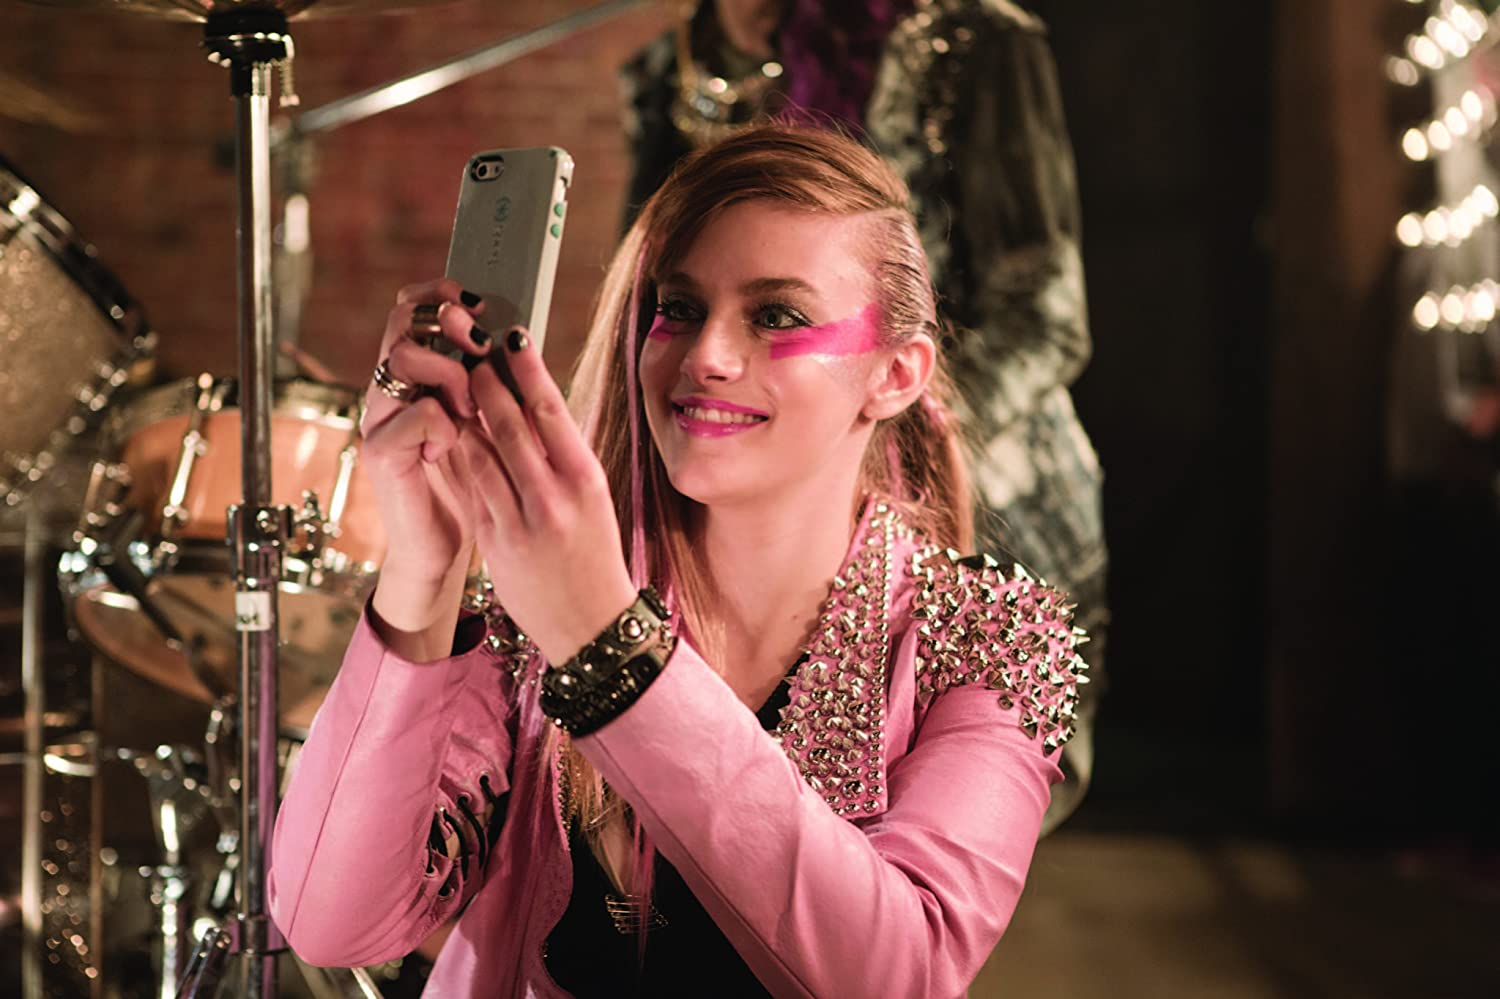 Aubrey Peeples in Jem and the Holograms (2015)